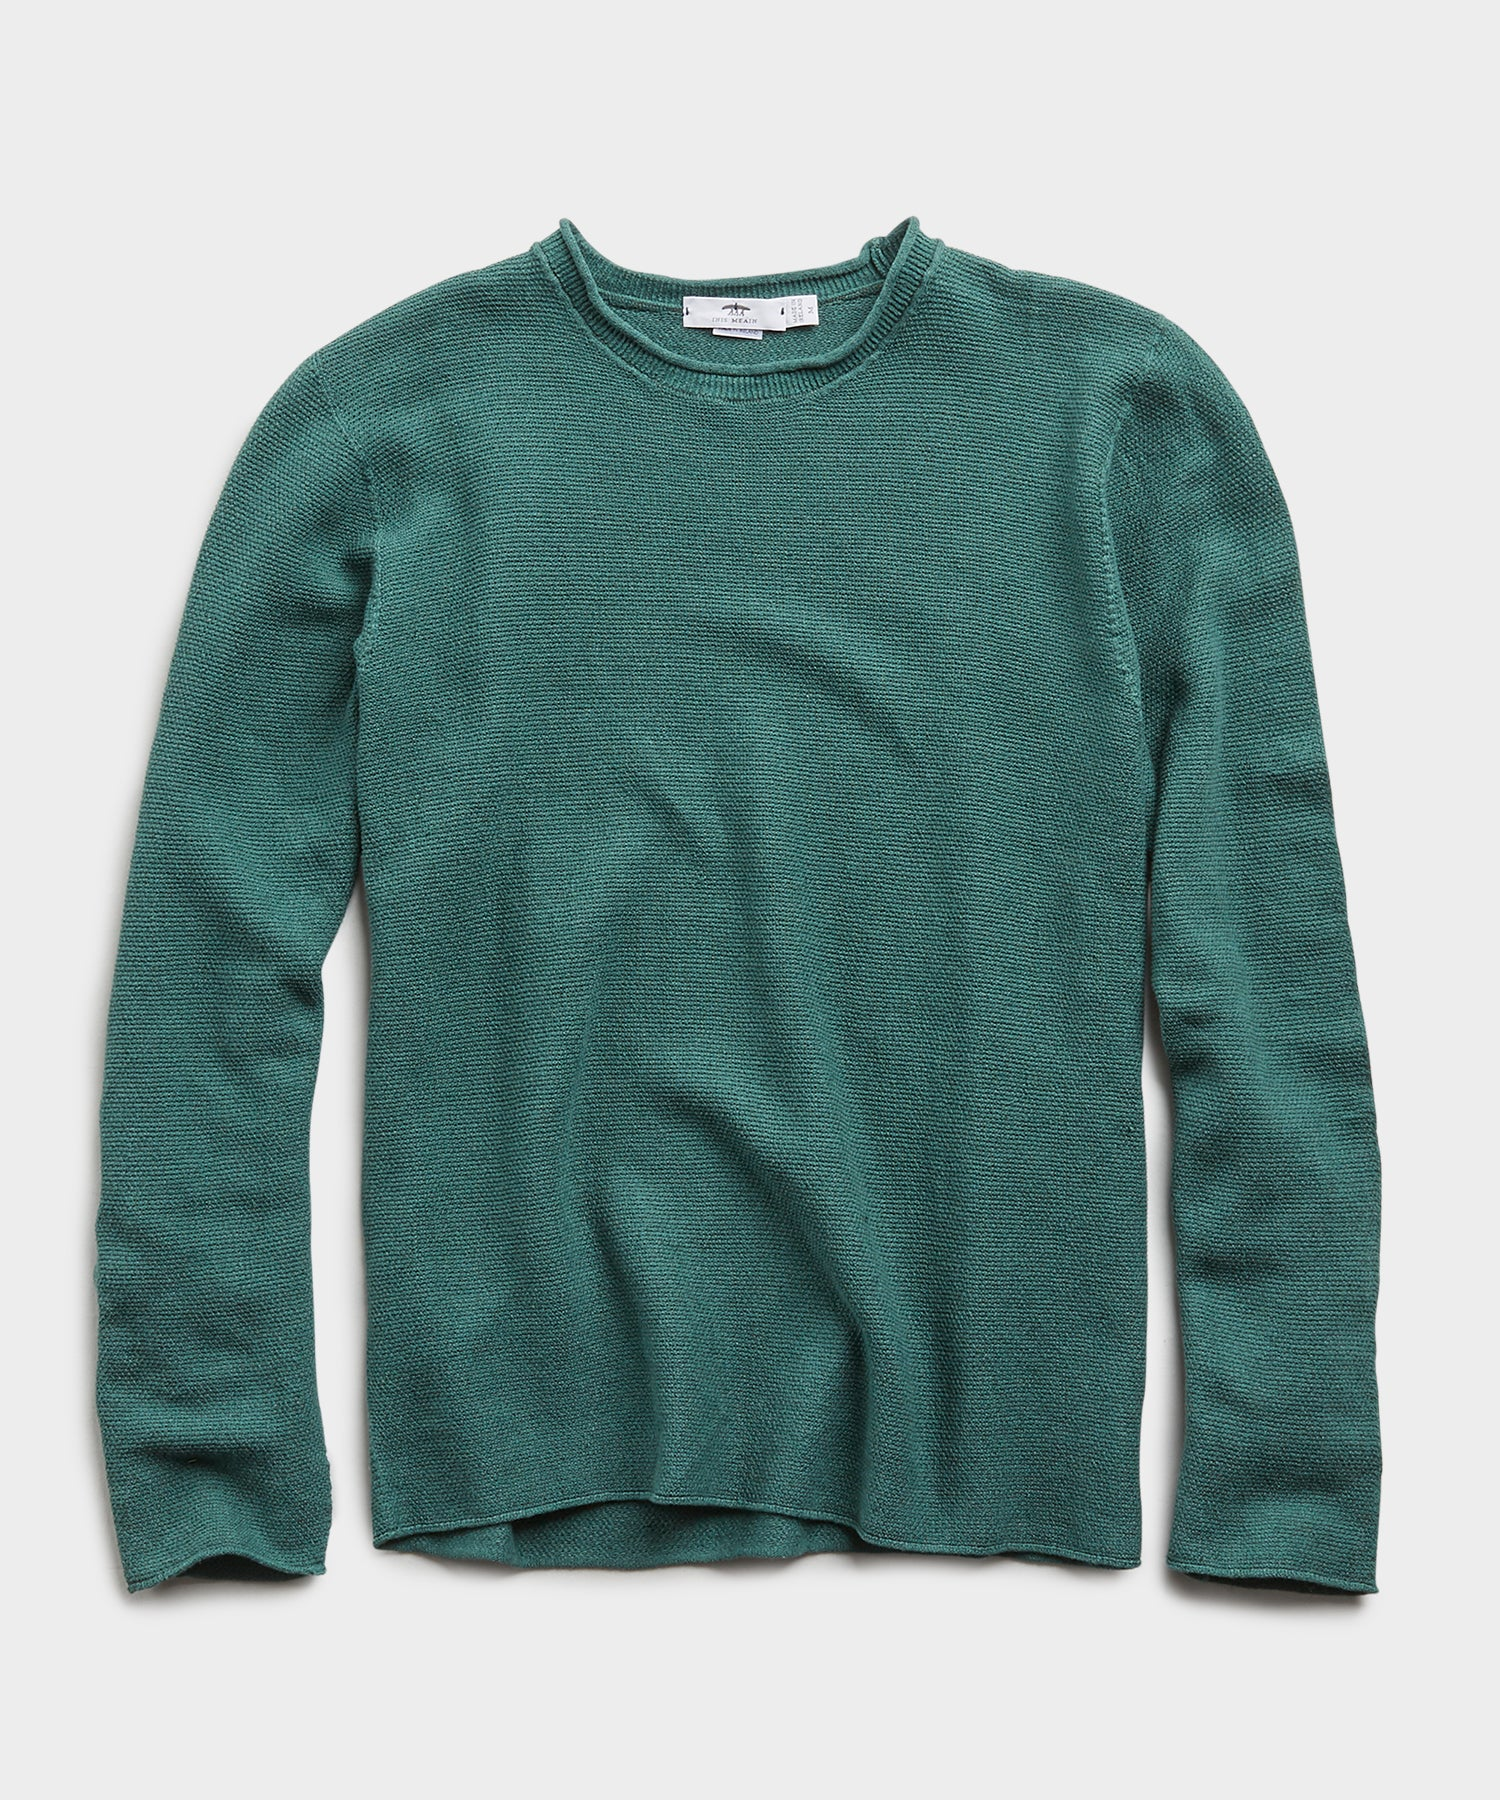 Inis Meain Mock Neck Linen Sweater in Emerald